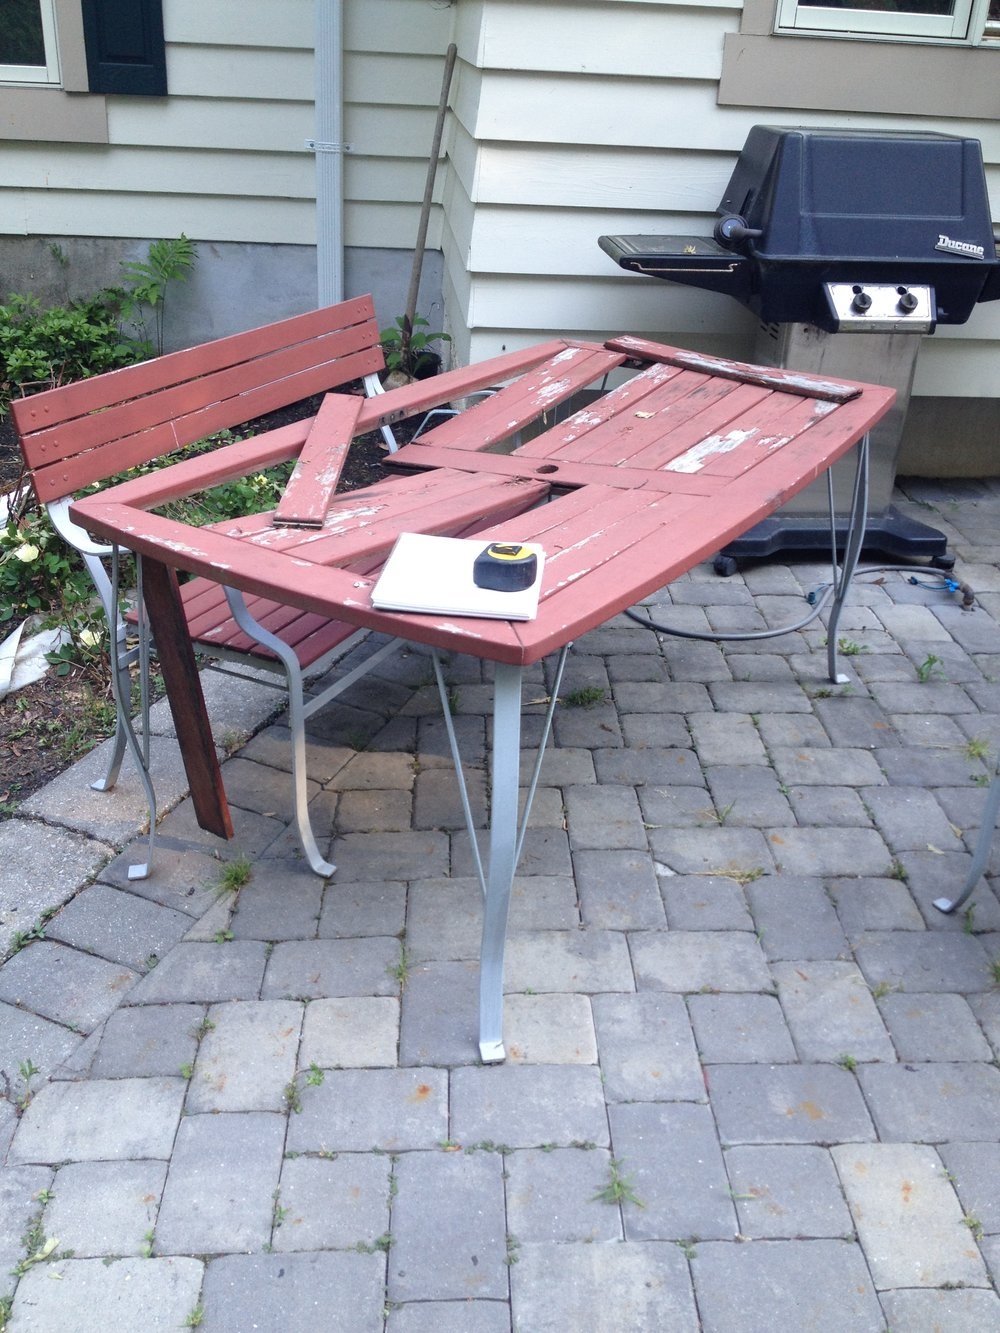 The client's original table was falling apart due to rot. I suggested building a new top from Brazilian mahogany because of its ability to withstand the elements.